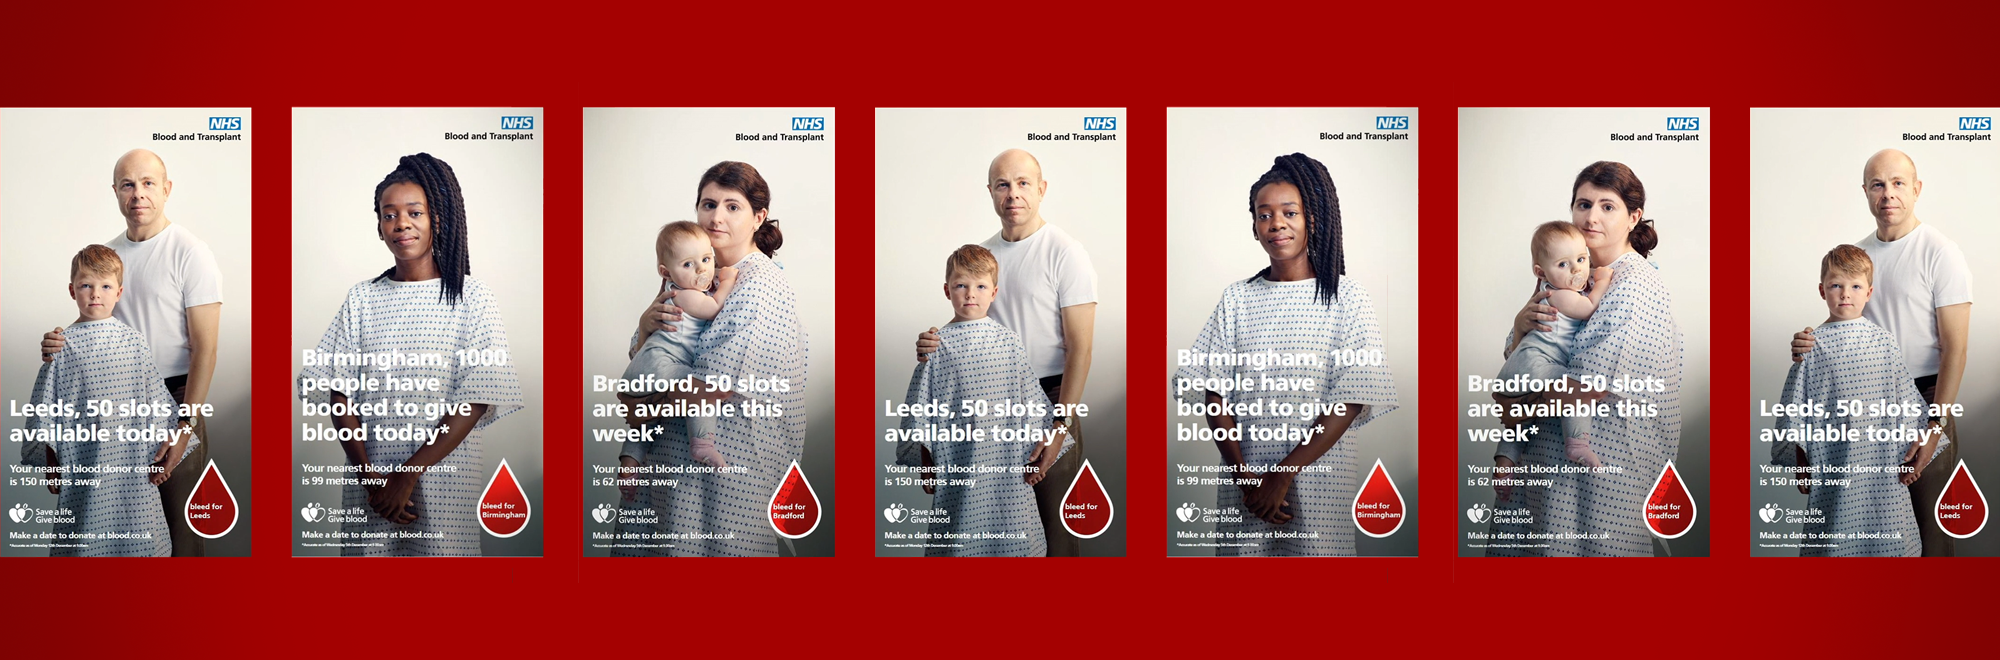 NHS Blood and Transplant, 23red and Clear Channel harness live data and real recipients to encourage regular blood donation